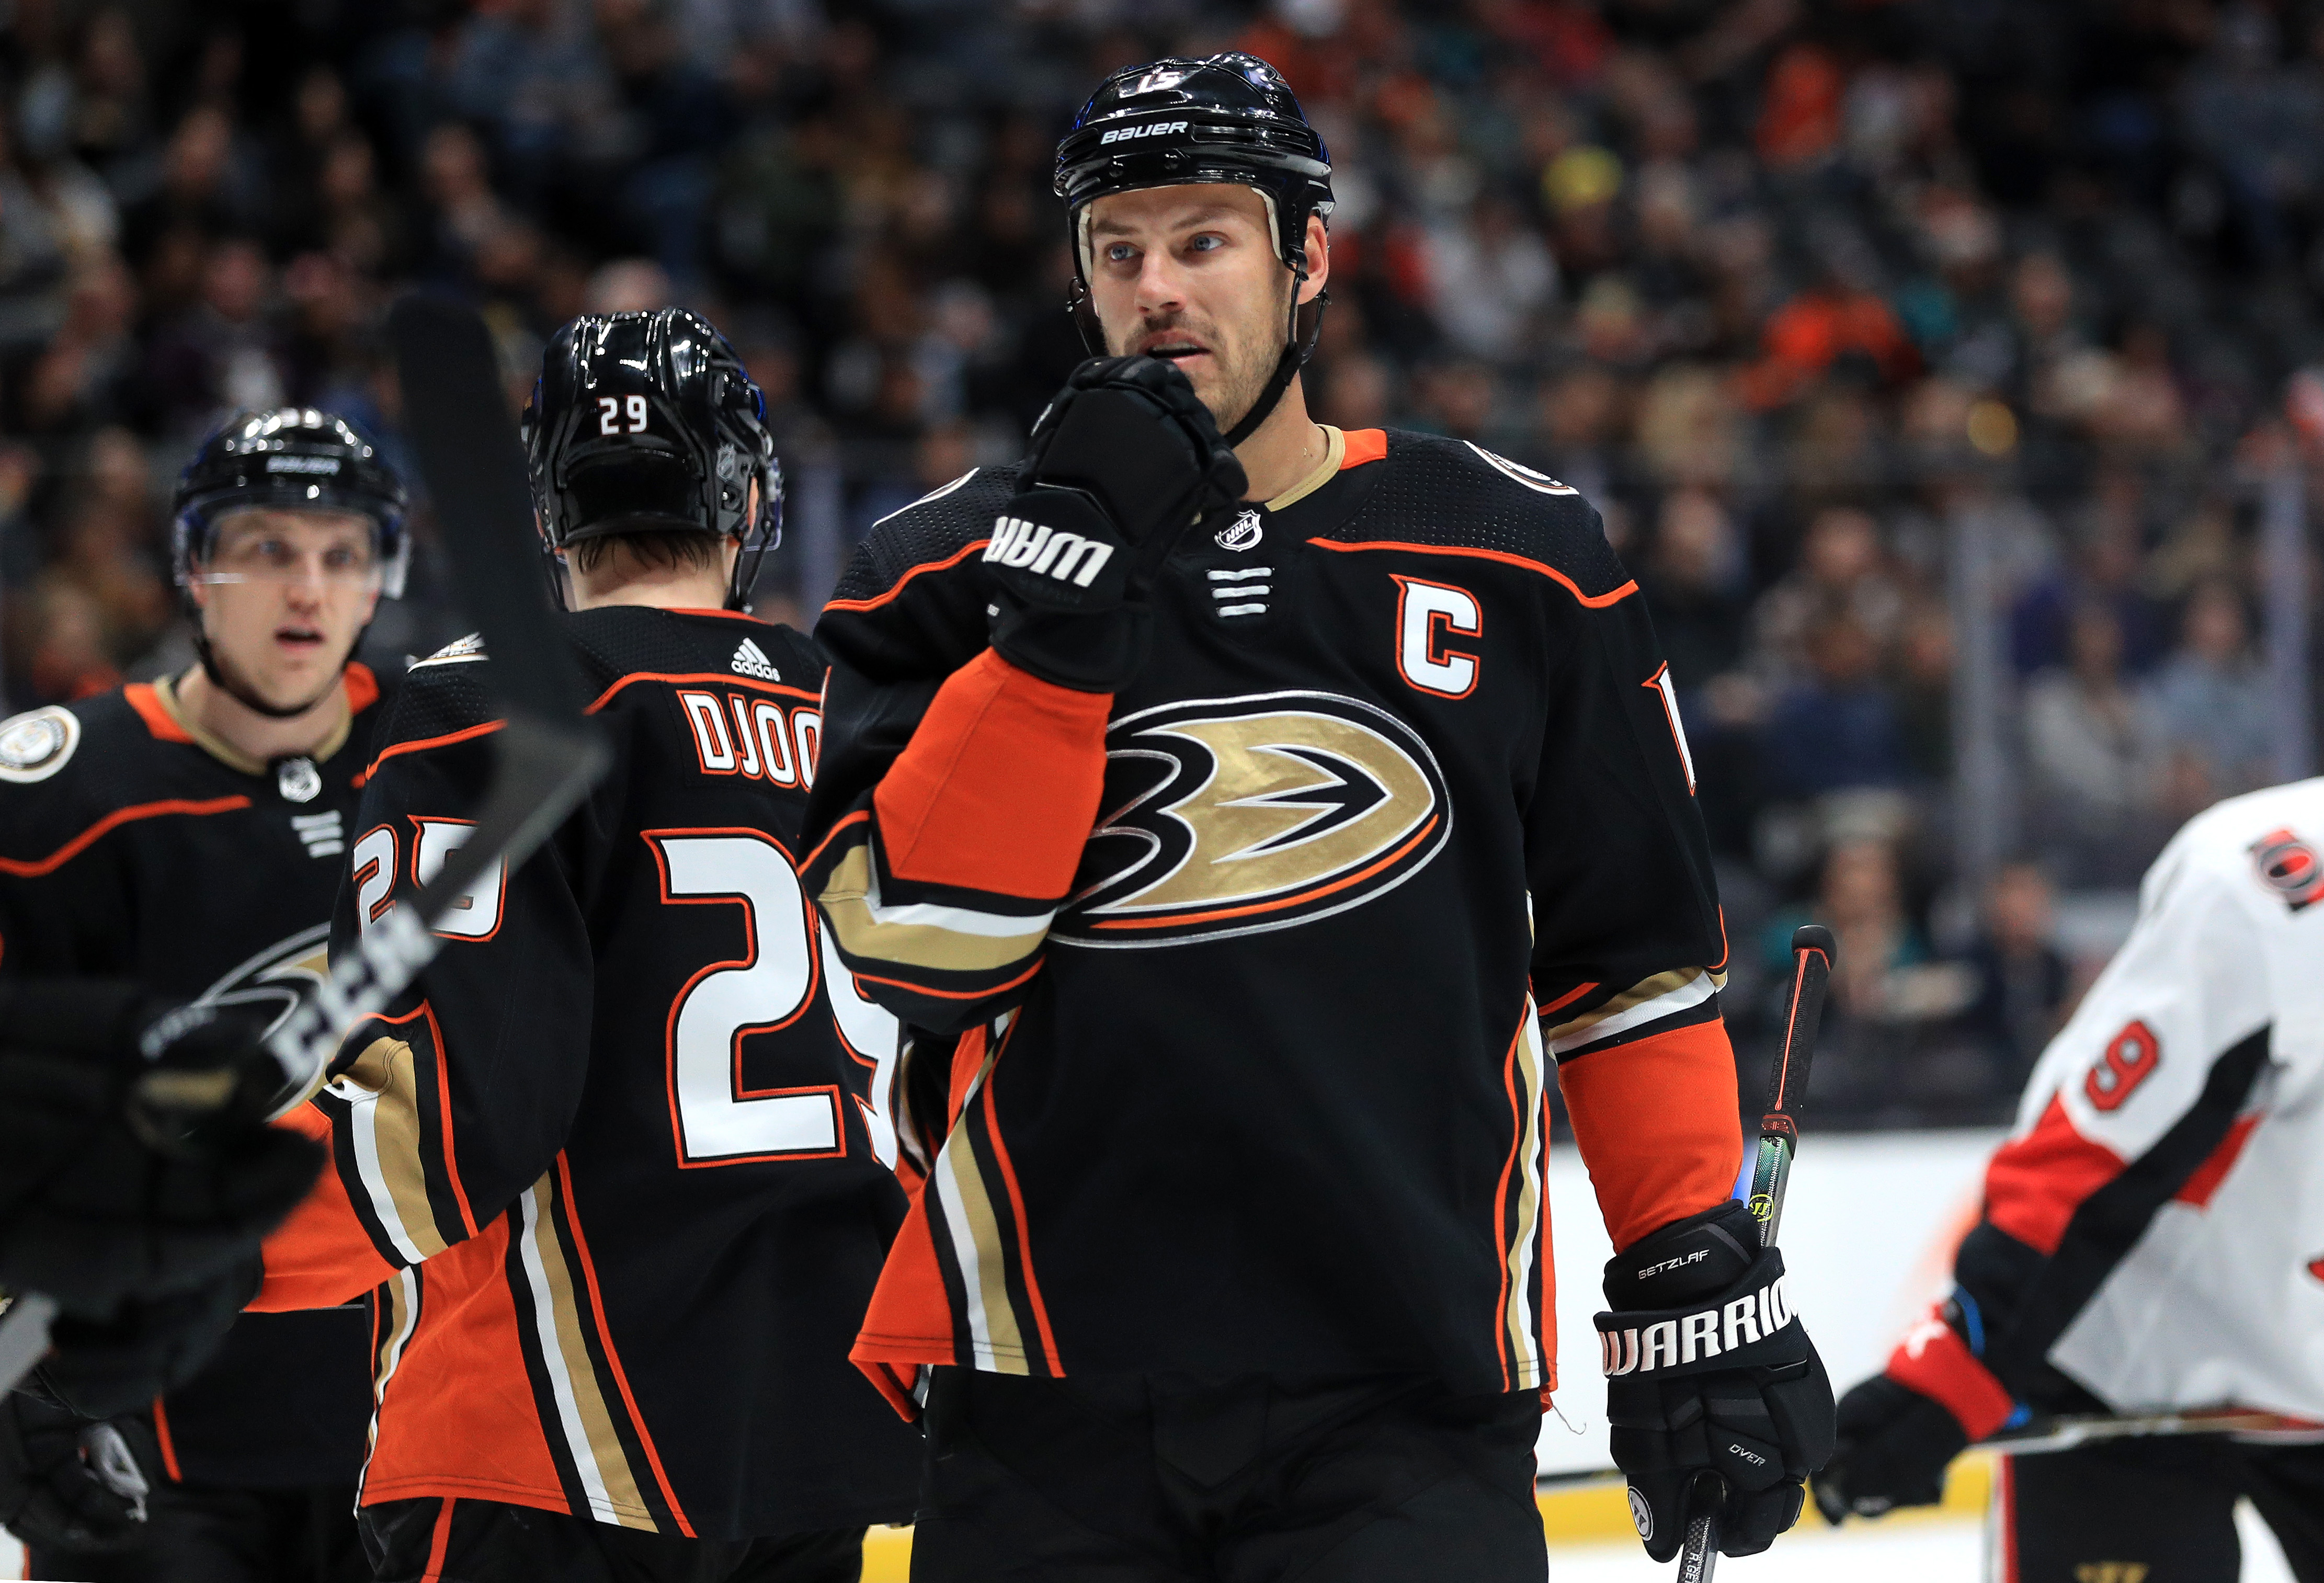 Ryan Getzlaf #15 of the Anaheim Ducks looks on during the first period of a game against the Ottawa Senators at Honda Center on March 10, 2020 in Anaheim, California.